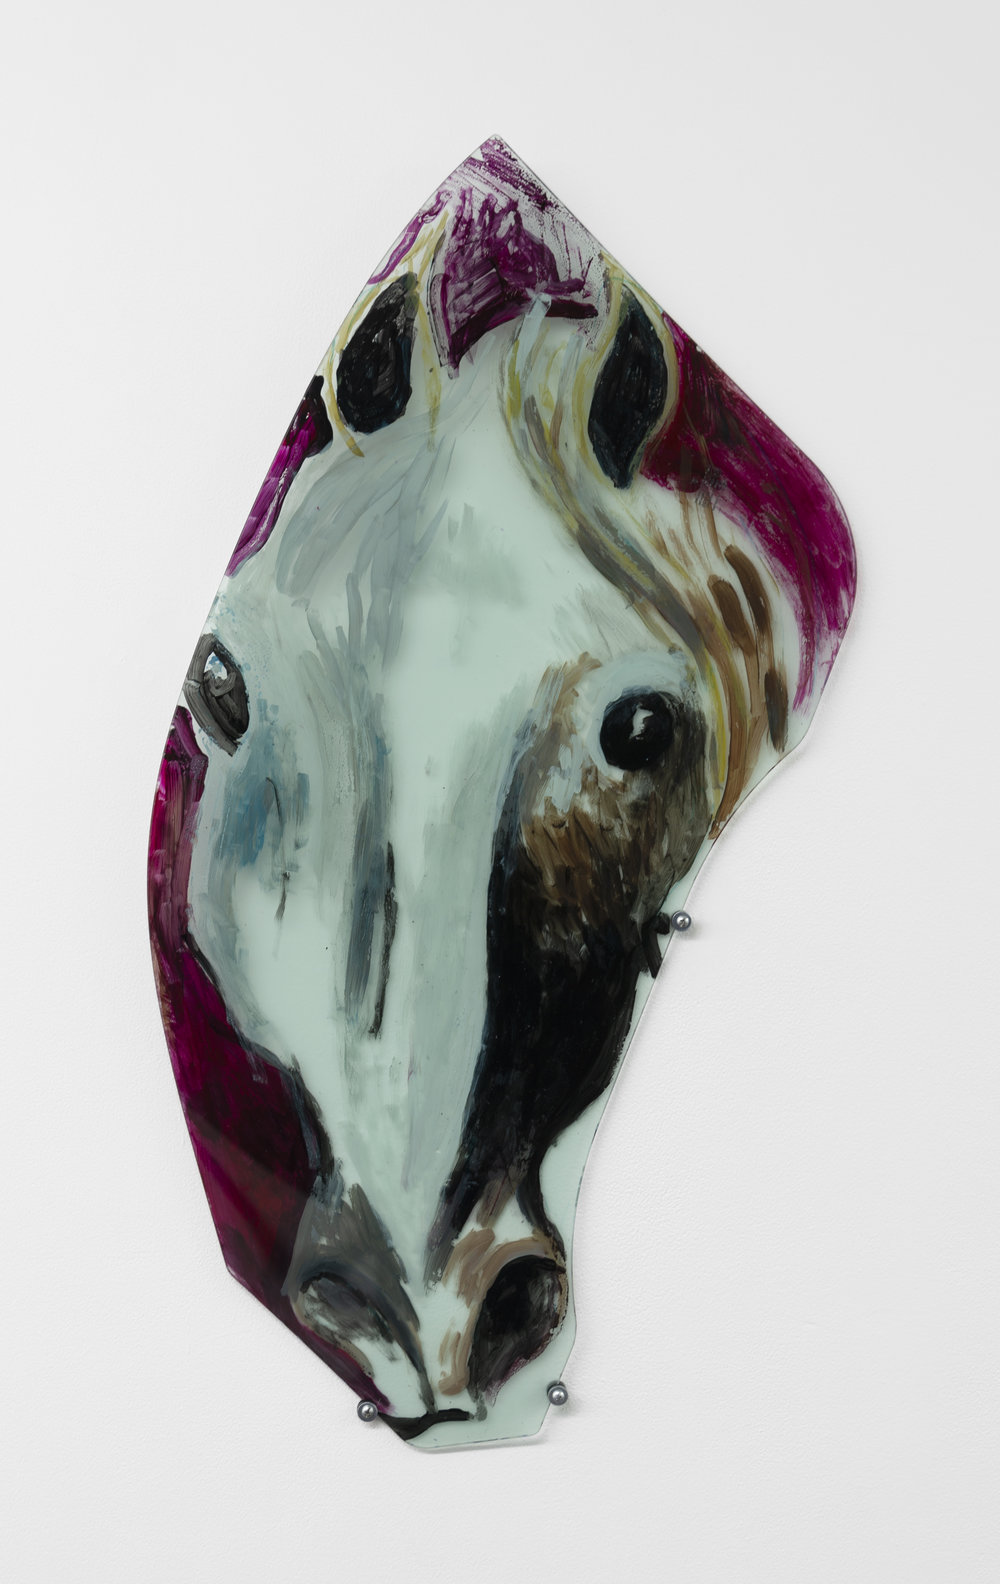 Jill Mulleady,  Head of White Horse,  2018, Enamel on Porsche windshield, 33 x 18 in